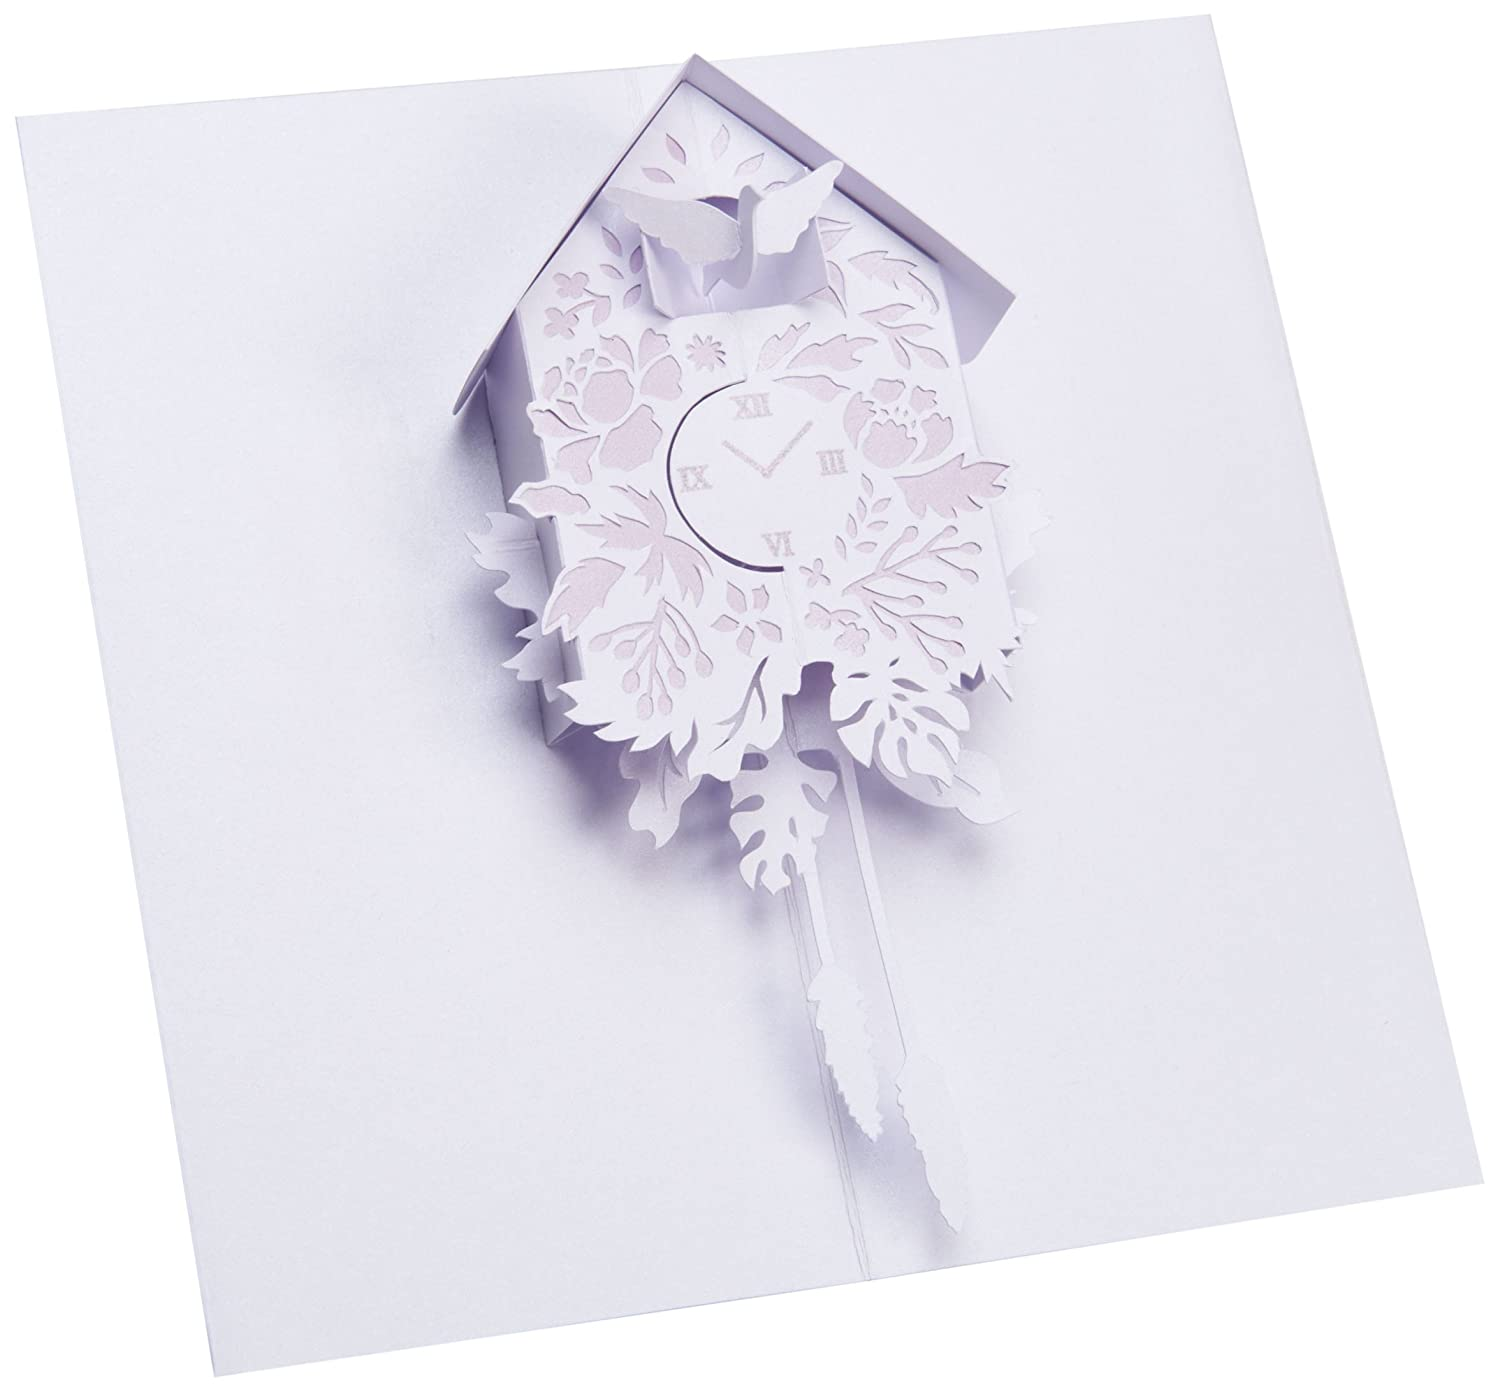 UWP Luxe AL003 Cuckoo Clock Pop Up Greeting Card